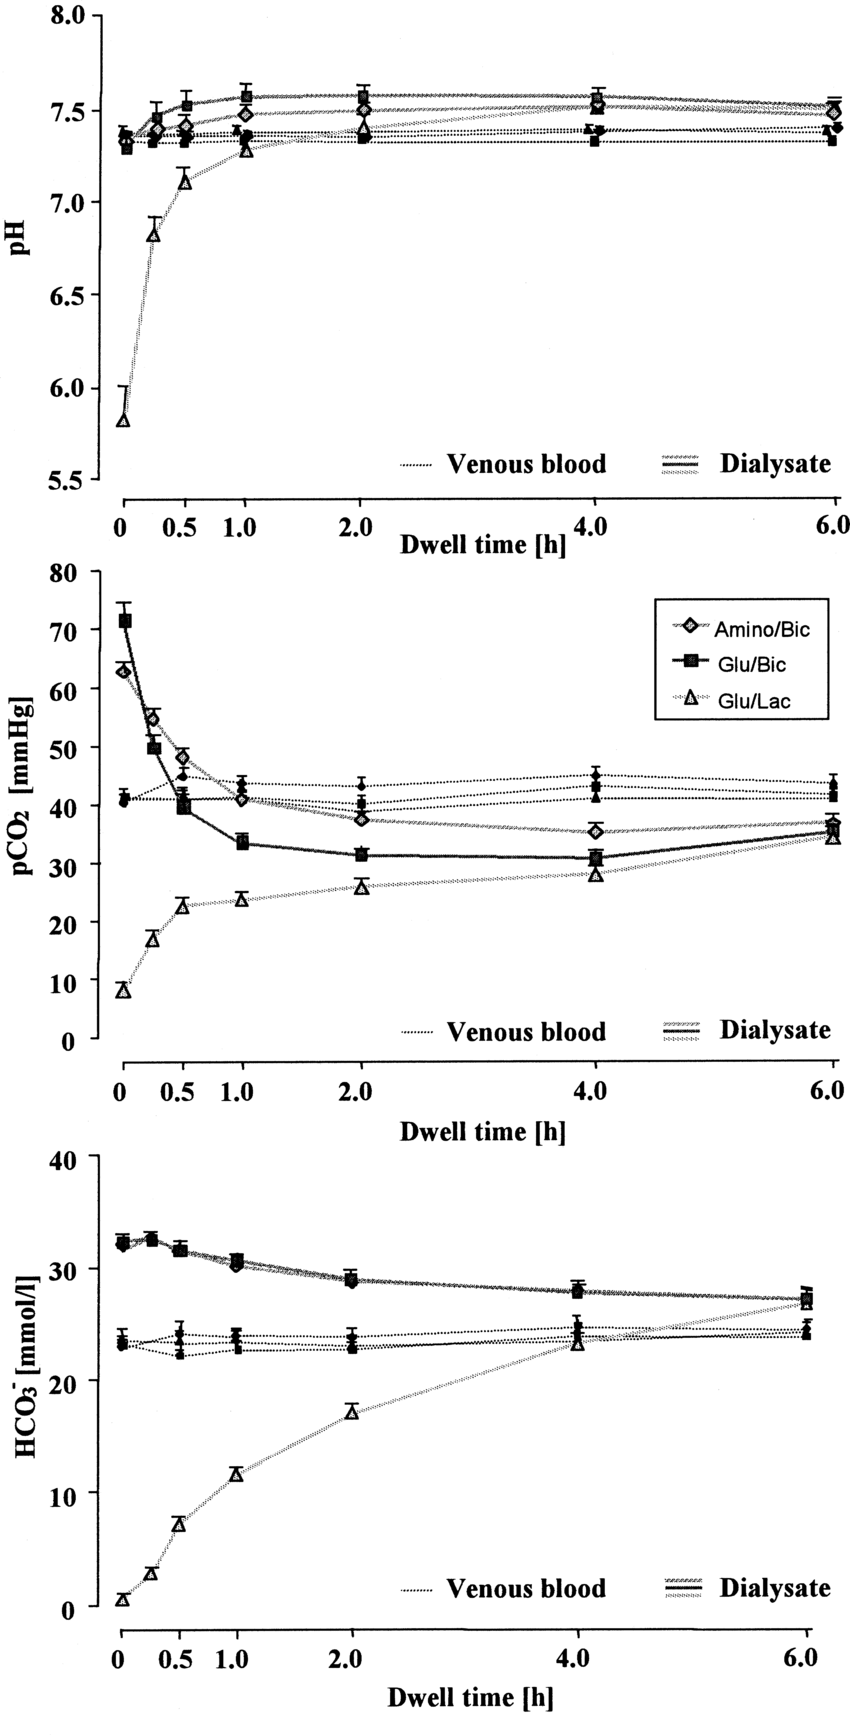 medium resolution of changes of acid base status in venous blood and dialysate during a 6 hour